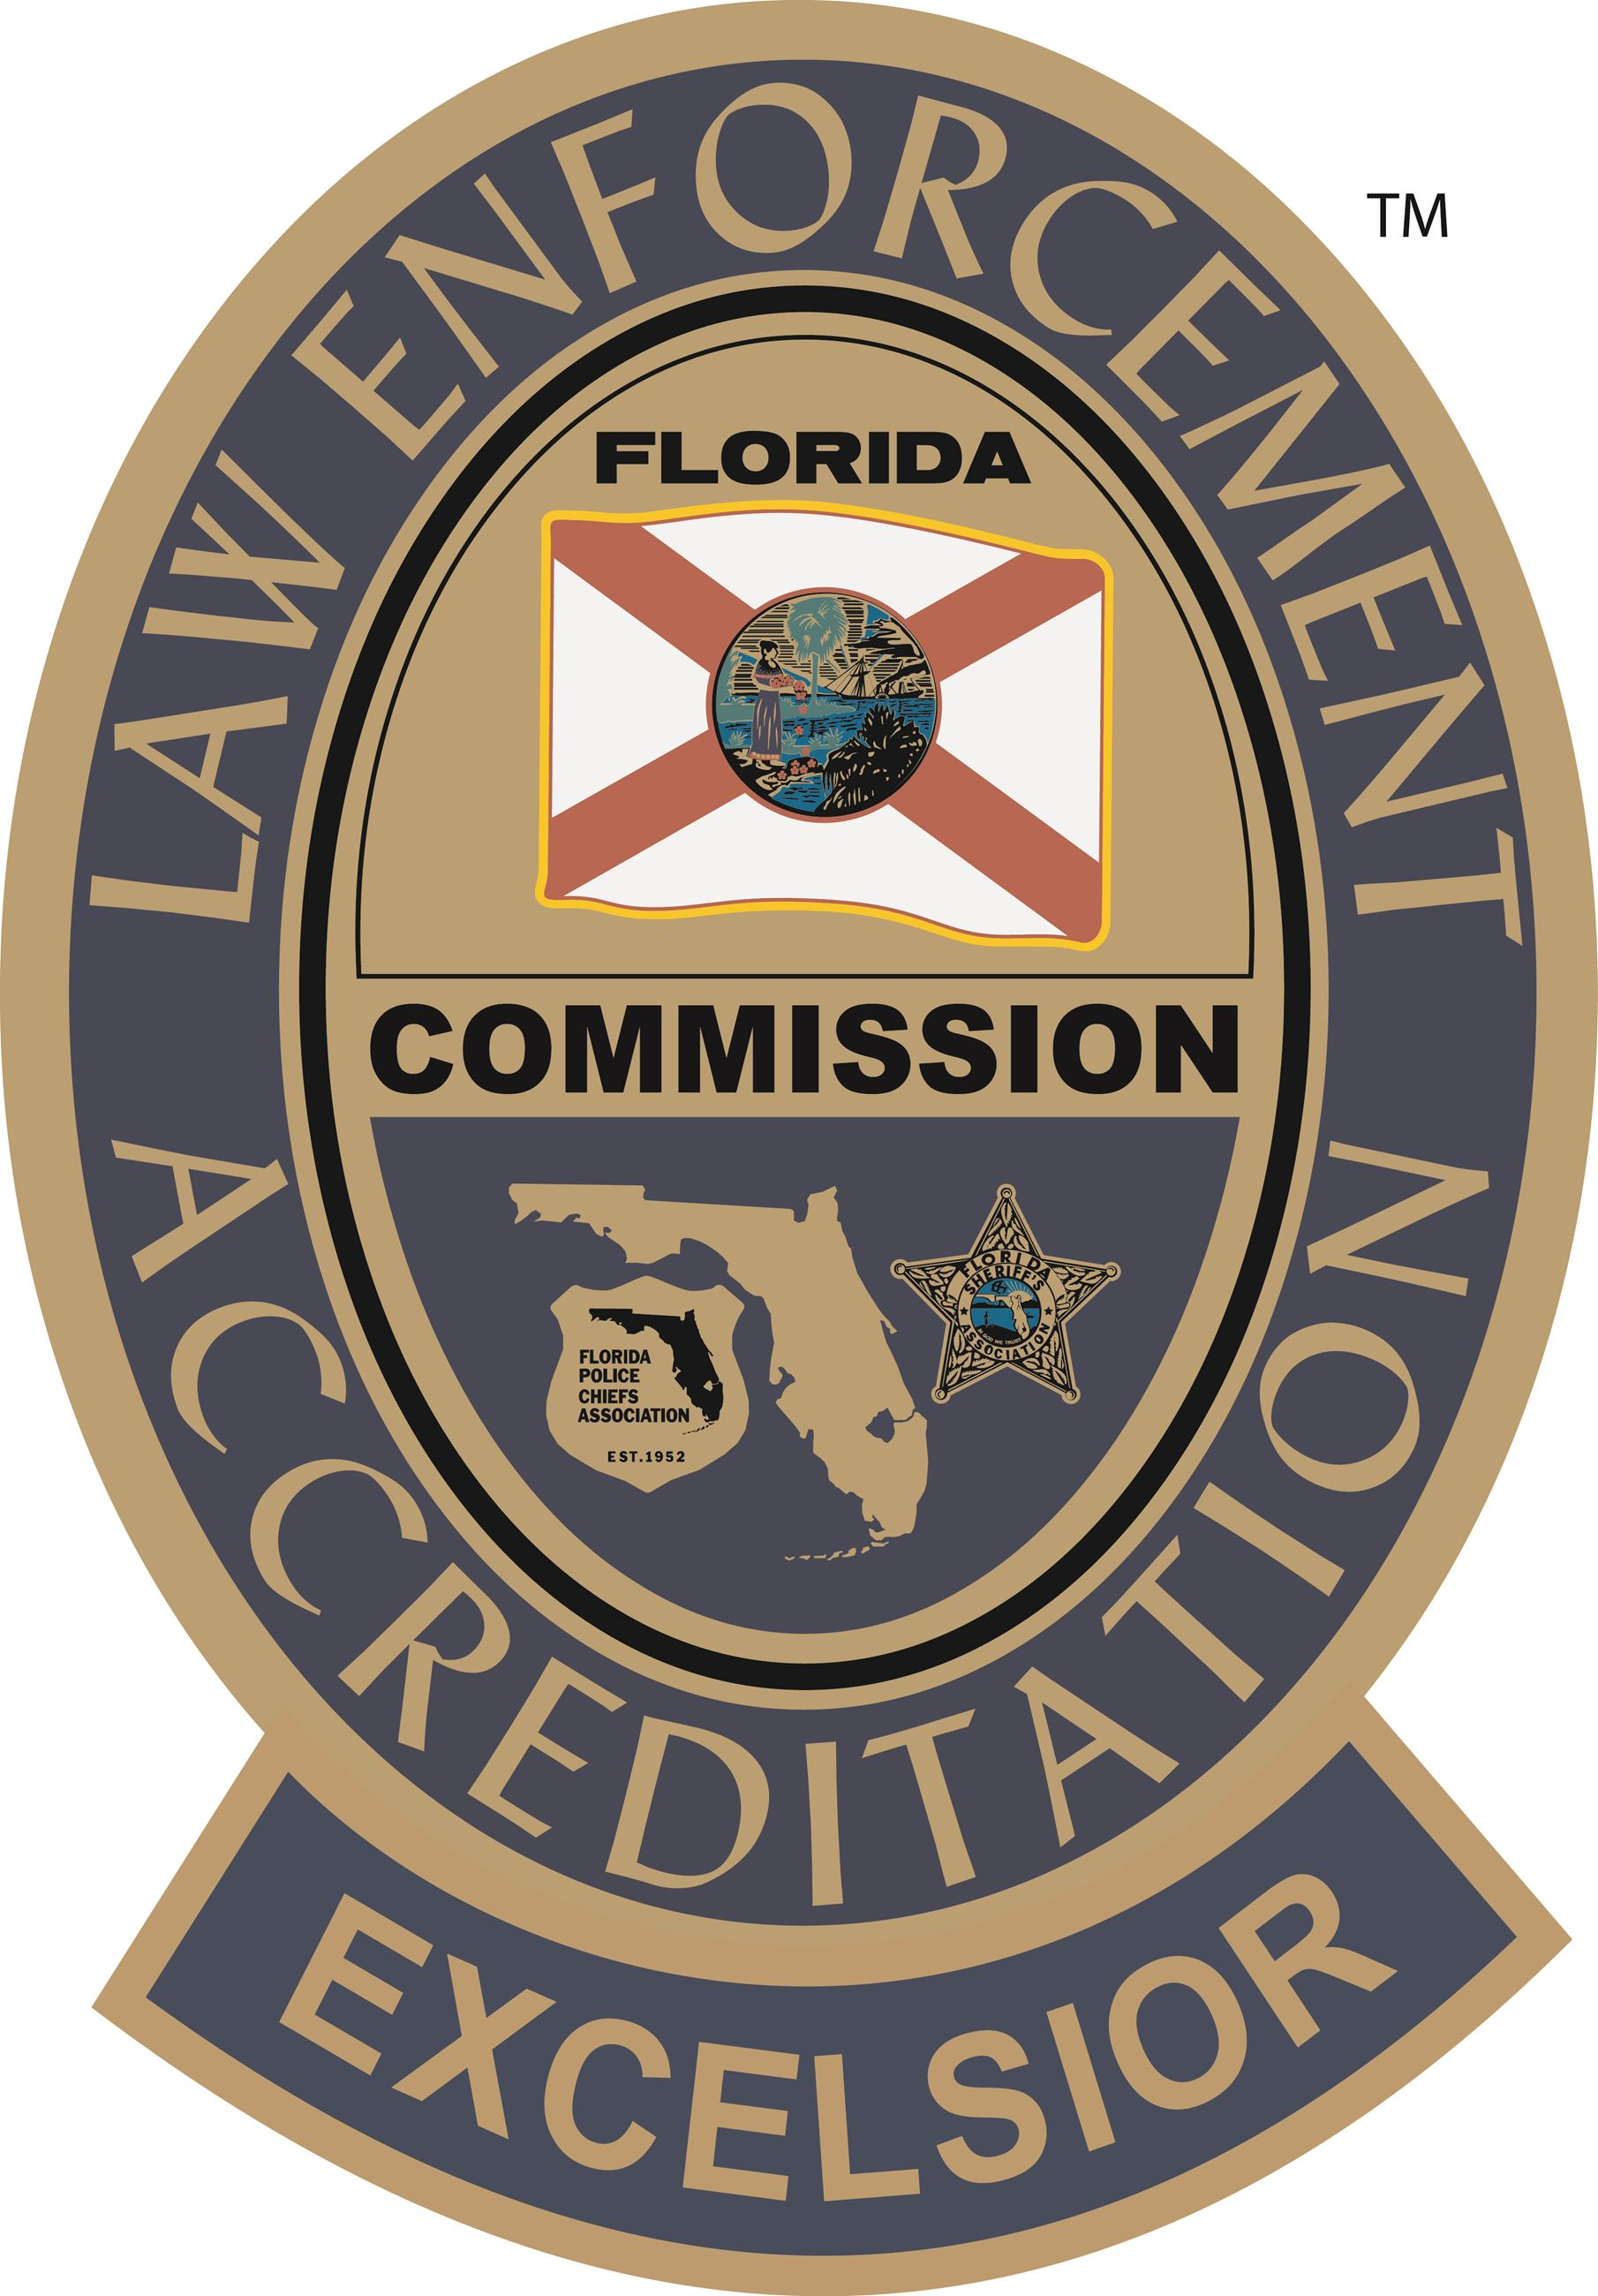 Police Accreditation Crest